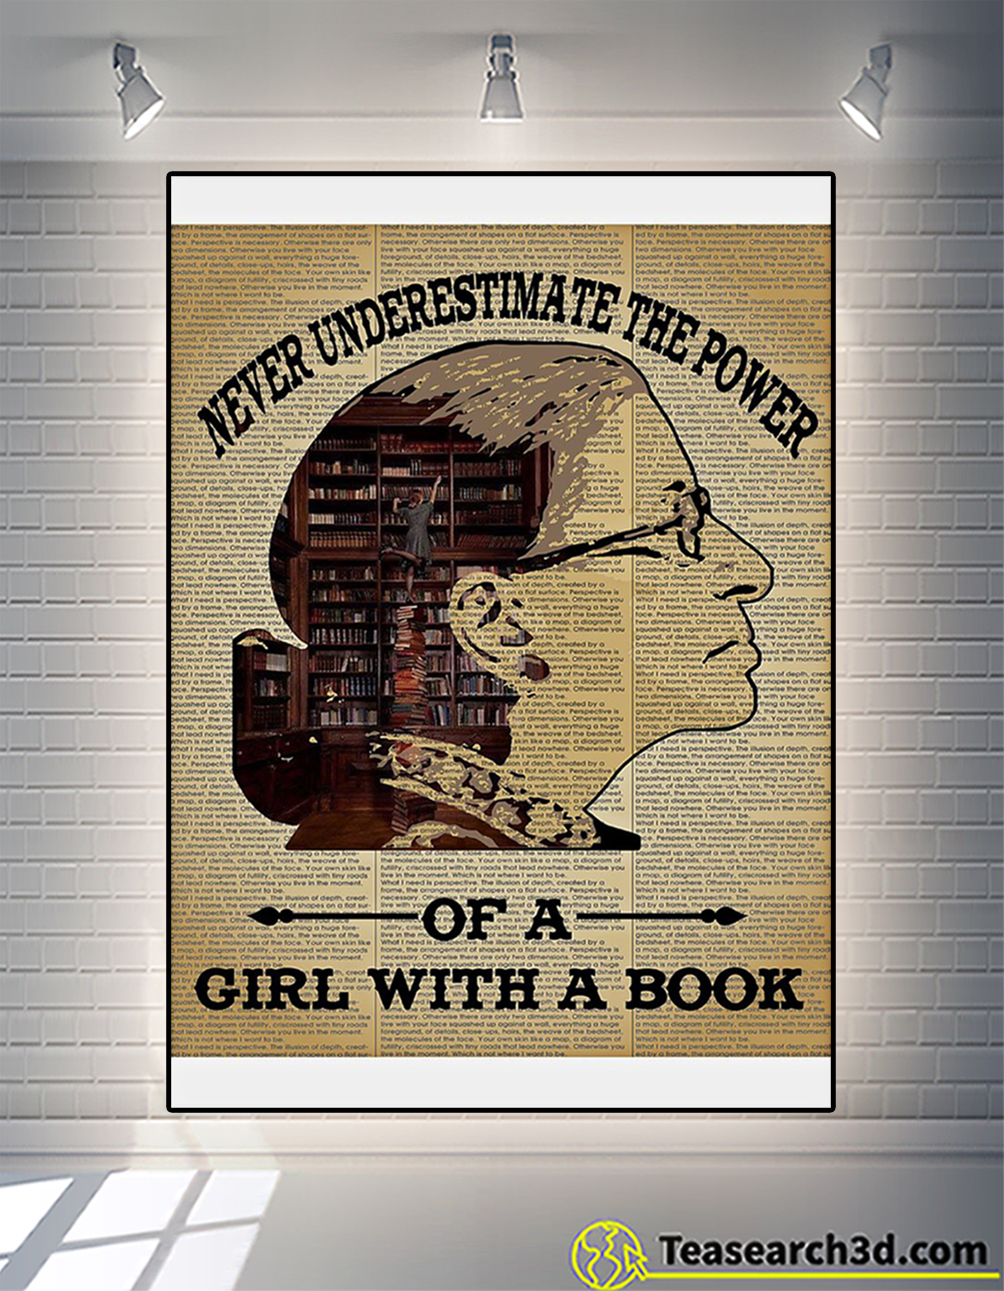 Ruth bader ginsburg never underestimate the power of a girl with a book poster